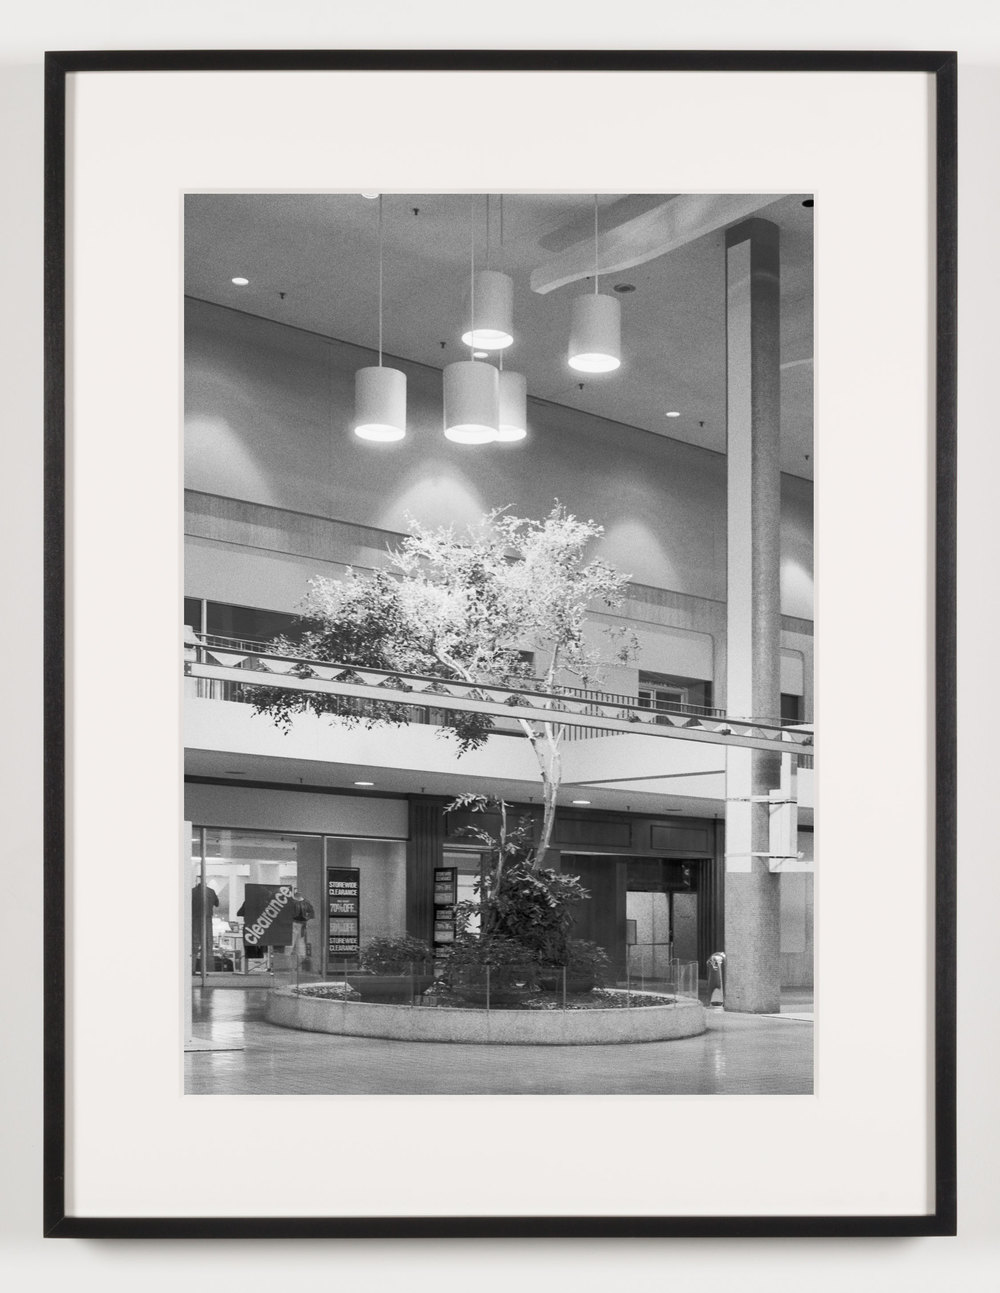 Midtown Plaza (View of Central Plaza), Rochester, NY, Est. 1962, Demo. 2010    2011   Epson Ultrachrome K3 archival ink jet print on Hahnemühle Photo Rag paper  21 5/8 x 28 1/8 inches   A Diagram of Forces, 2011